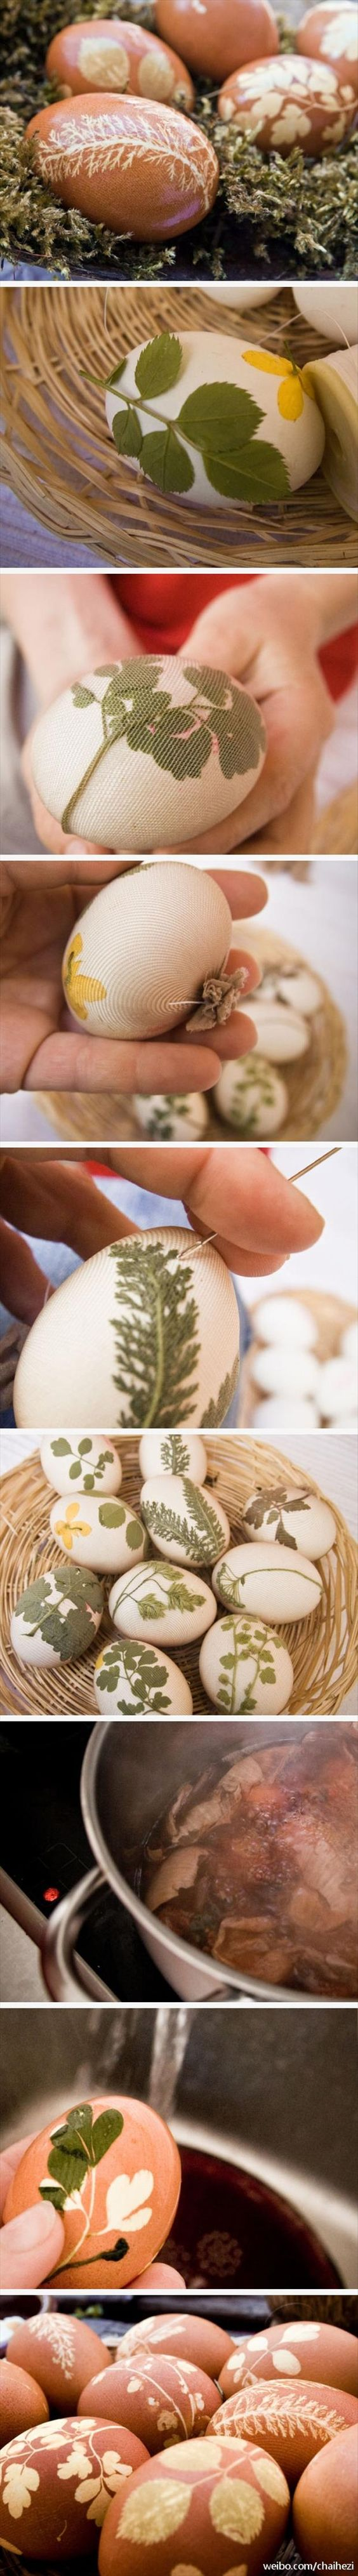 Fun Easter Craft Ideas - 32 Pics: